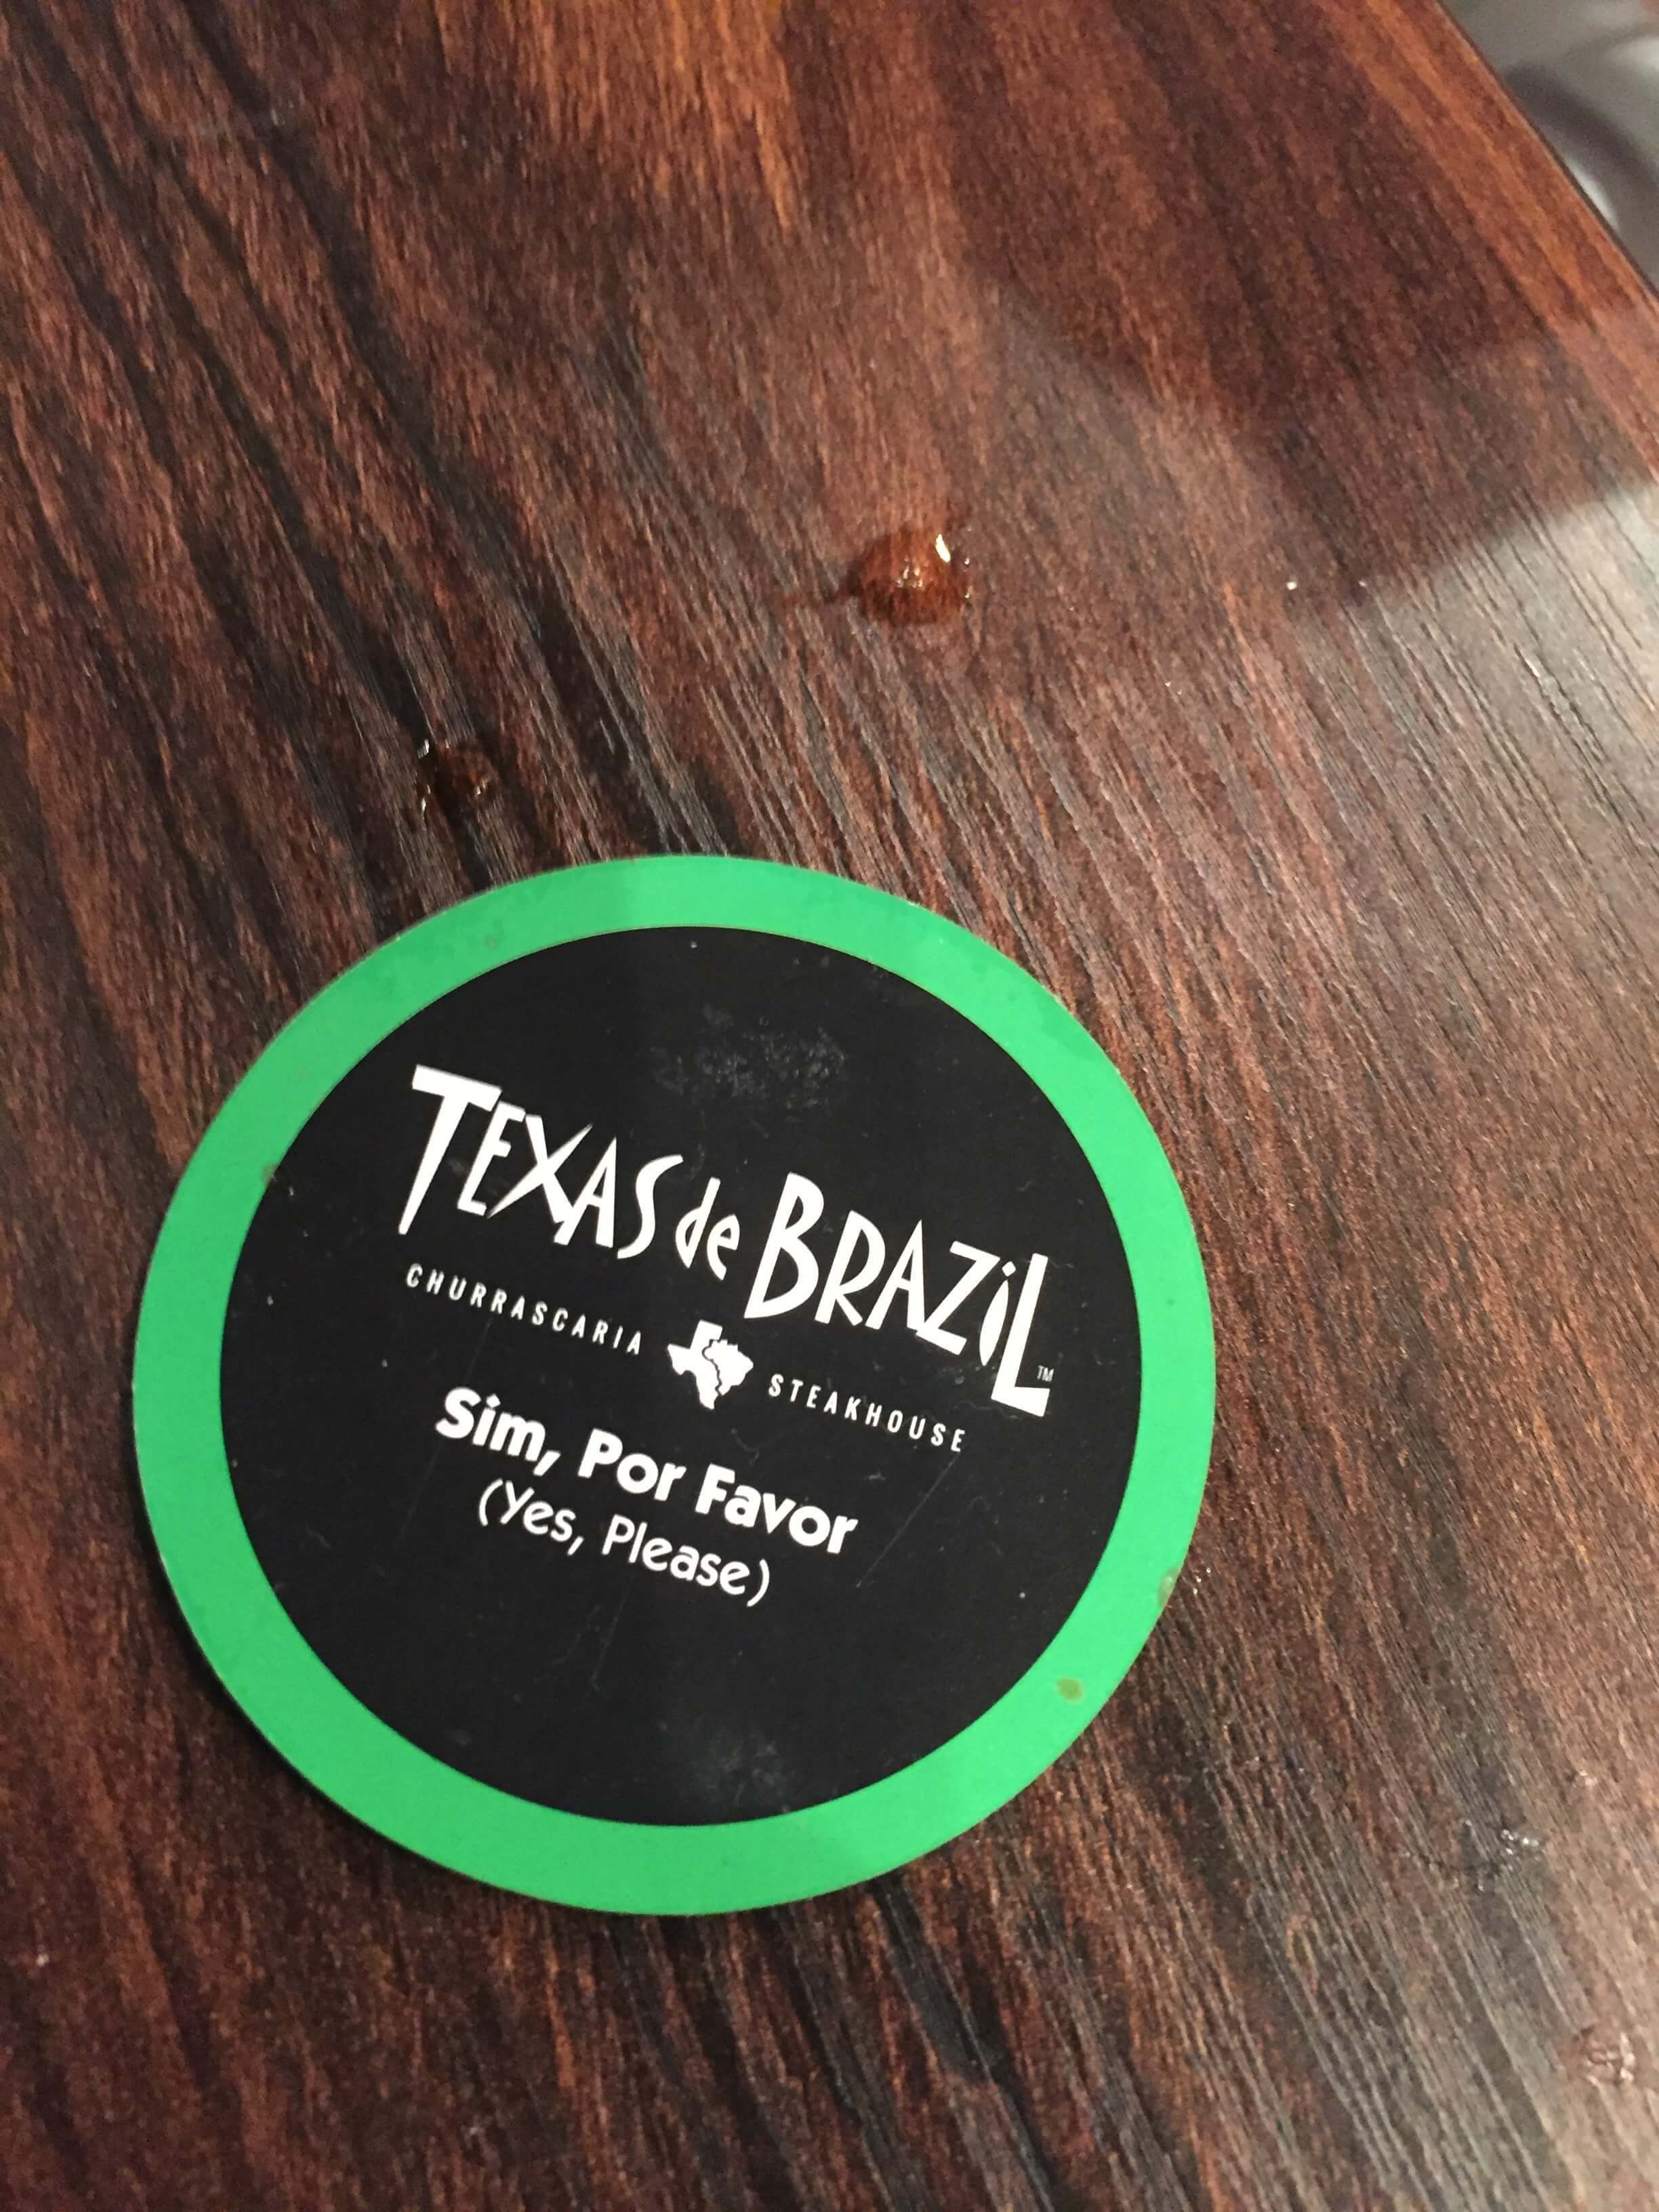 Flip the disk from Red to Green to start your Churrascaria meat experience a Texas de Brazil